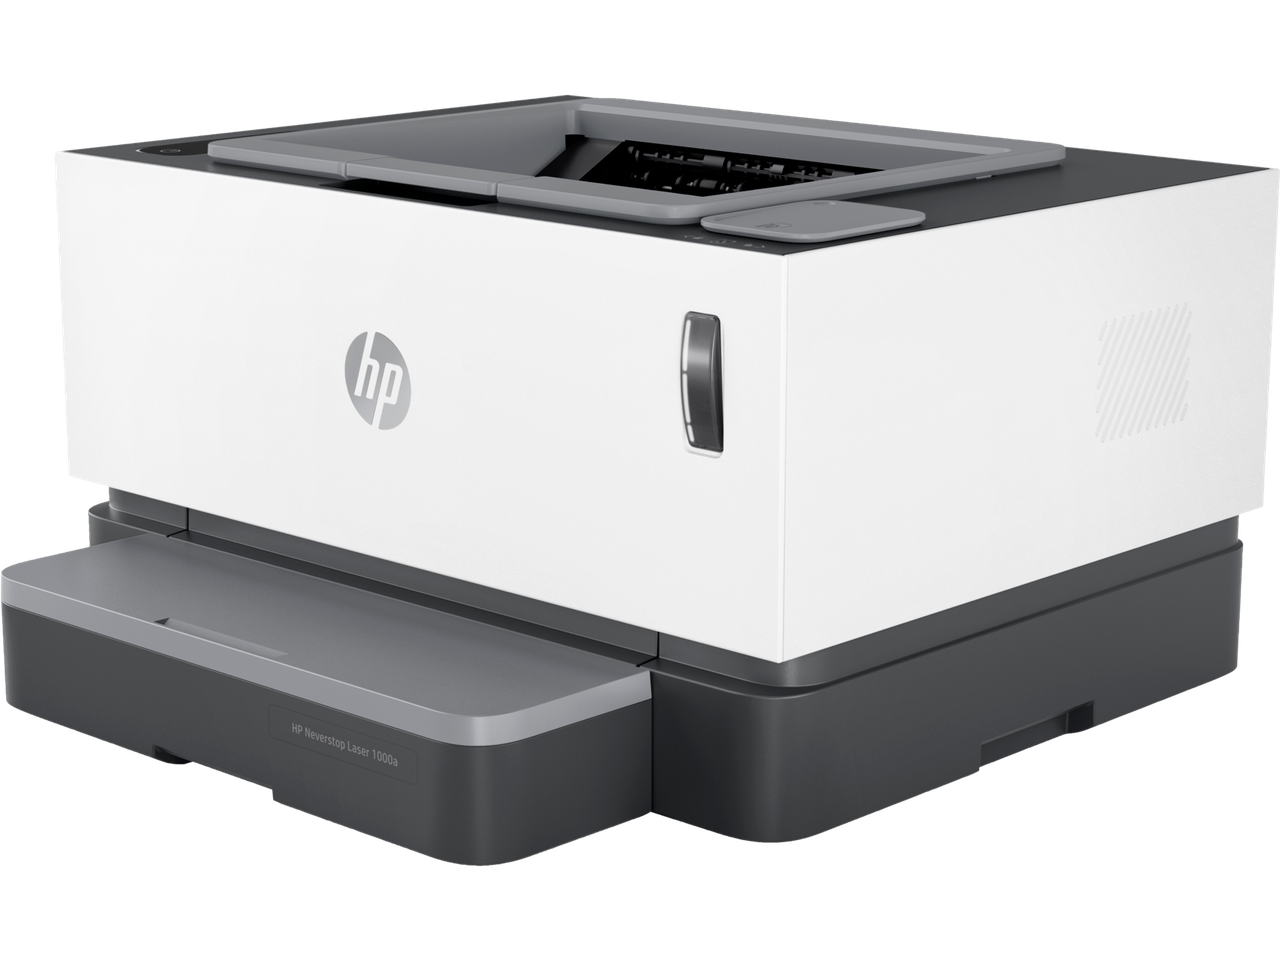 ПринтерHP 4RY22A HP Neverstop Laser 1000a Printer (A4) , 600 dpi, 20 ppm, 32 MB, 500 MHz, 150 pages tray, USB